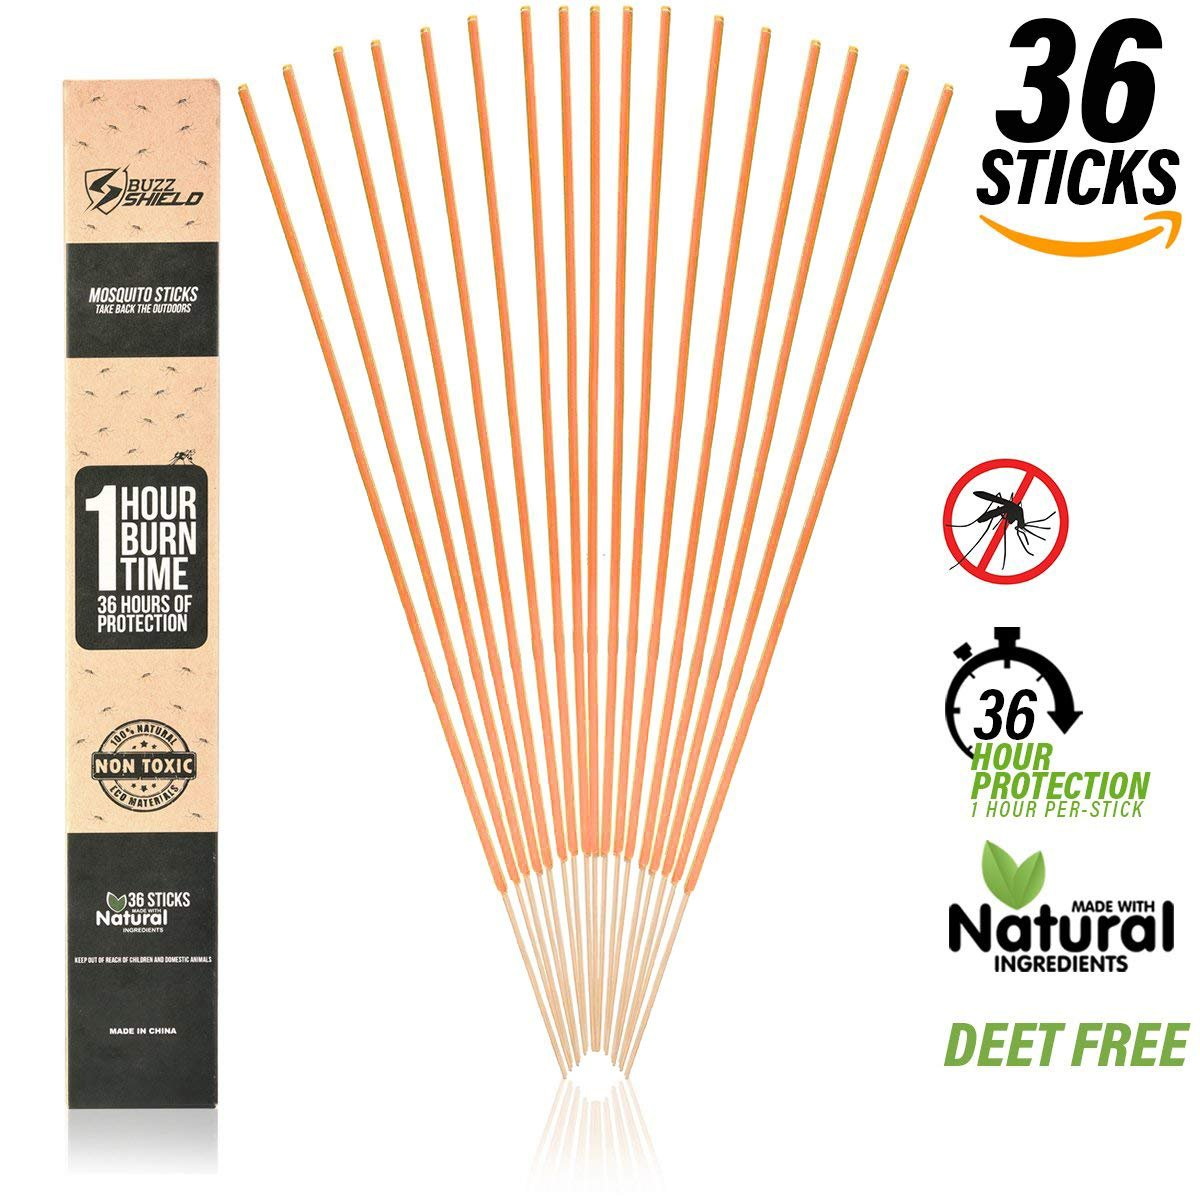 EnvyDeal Mosquito Repellent Sticks Insect Incense Natural DEET Free (36 Pack) Indoor Bamboo Infused with Citronella, Lemongrass and Rosemary Each Stick Burns for 1 1/2 Hours Camping Accessories